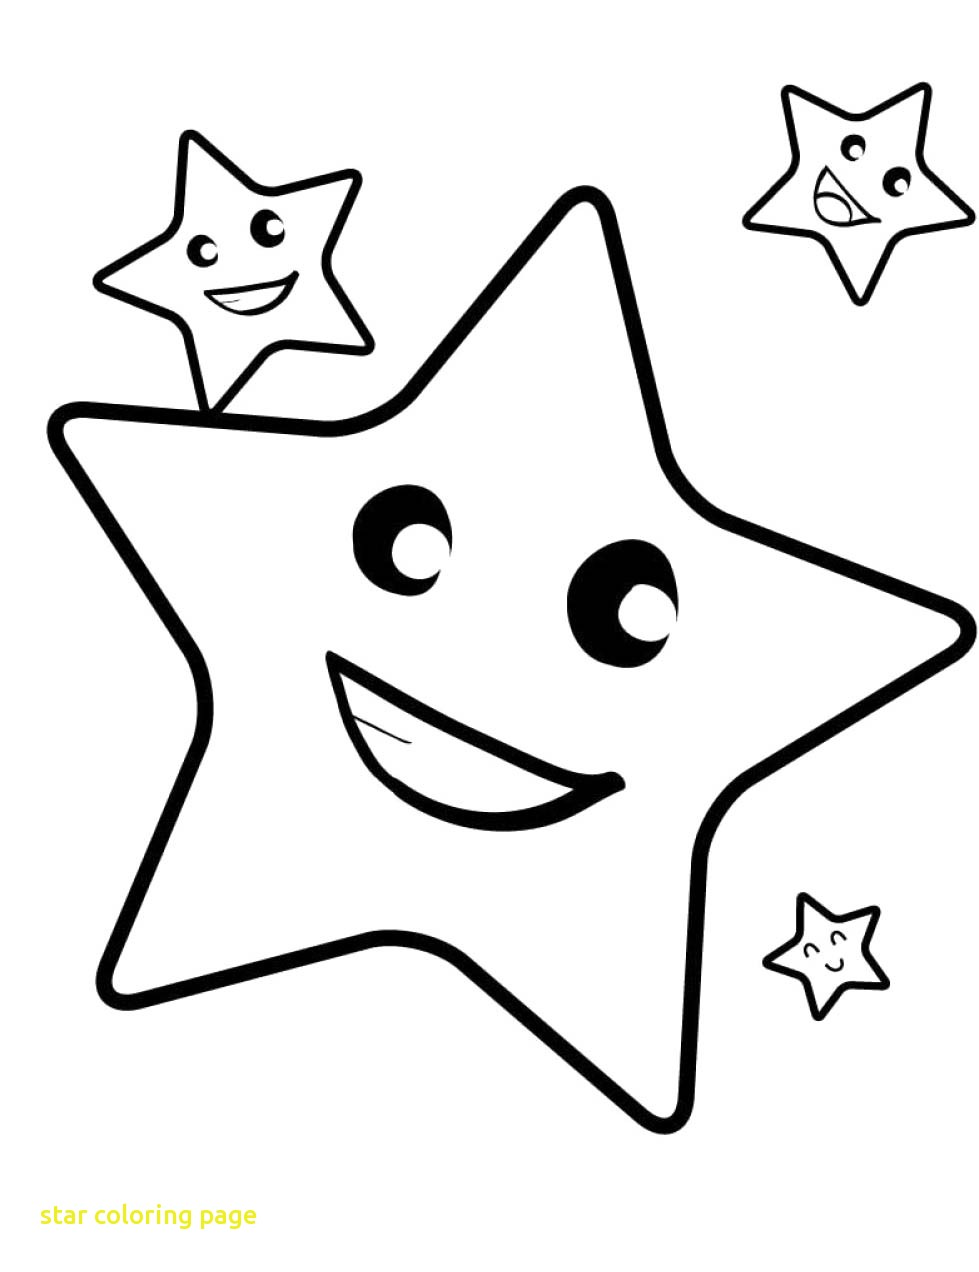 979x1272 Star Coloring Page Pages Of Stars